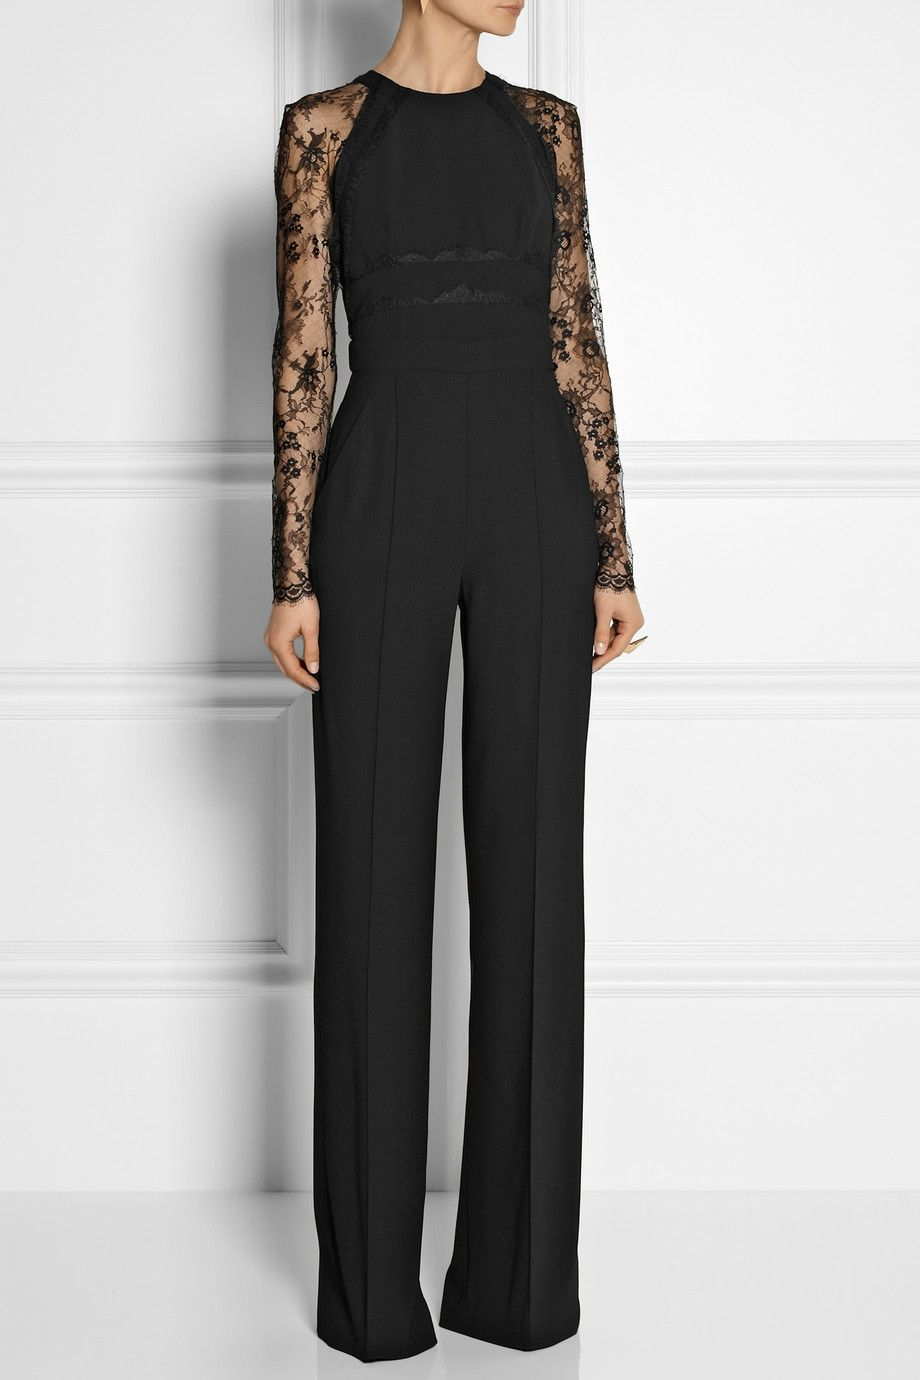 4a40f5440076 Elie Saab Paneled Lace and Crepe Jumpsuit in Black